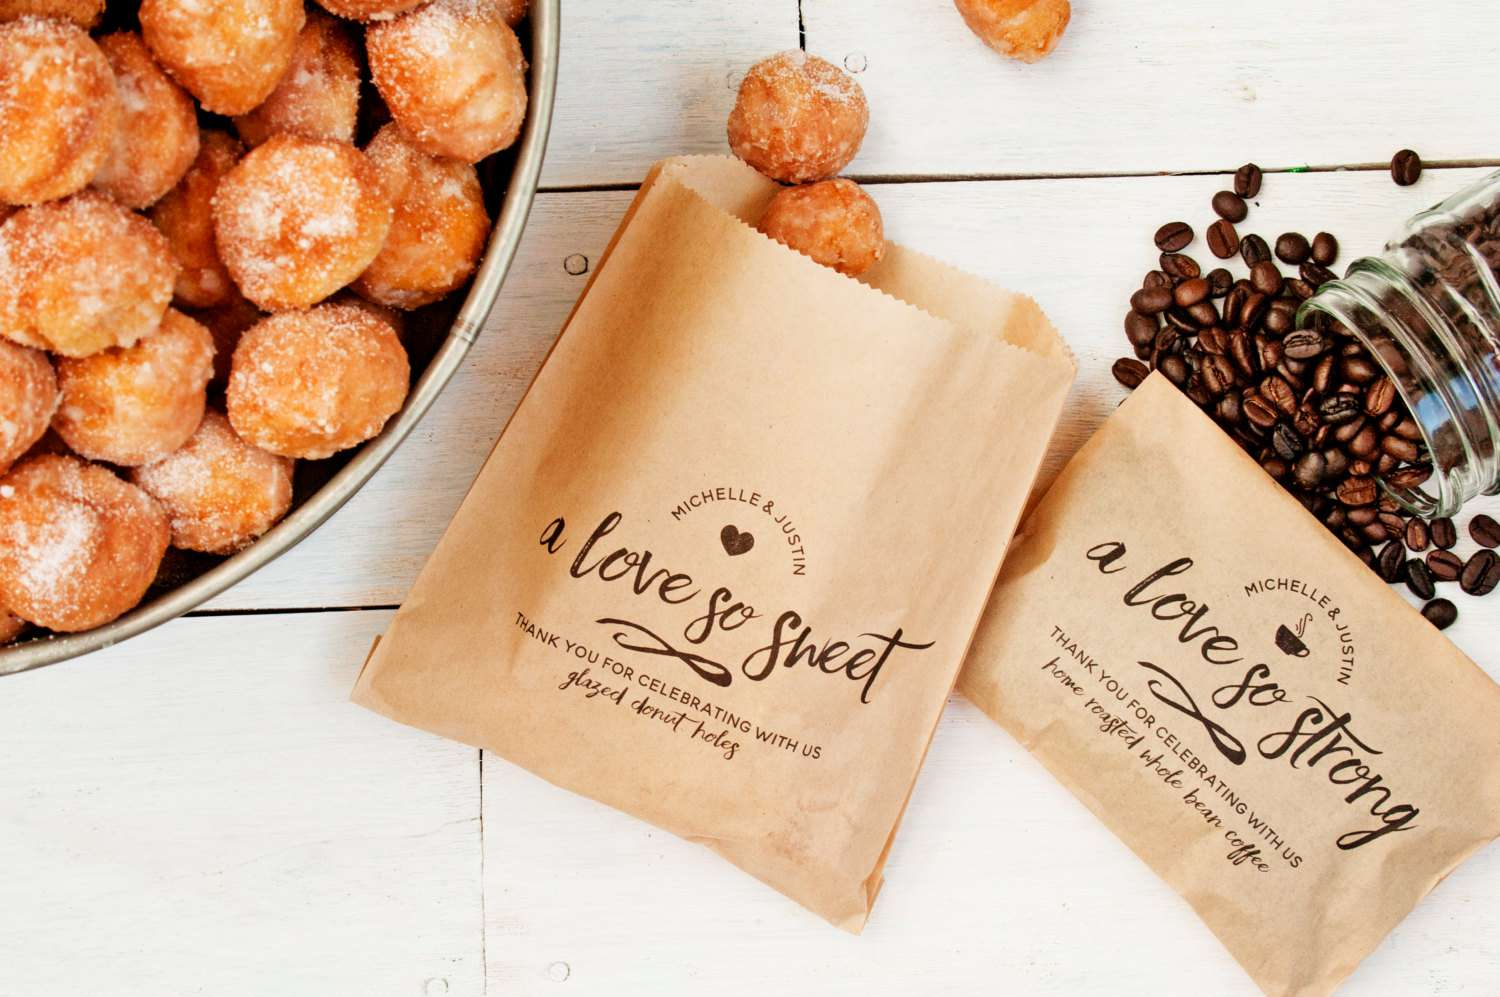 Donuts and coffee bean party favors